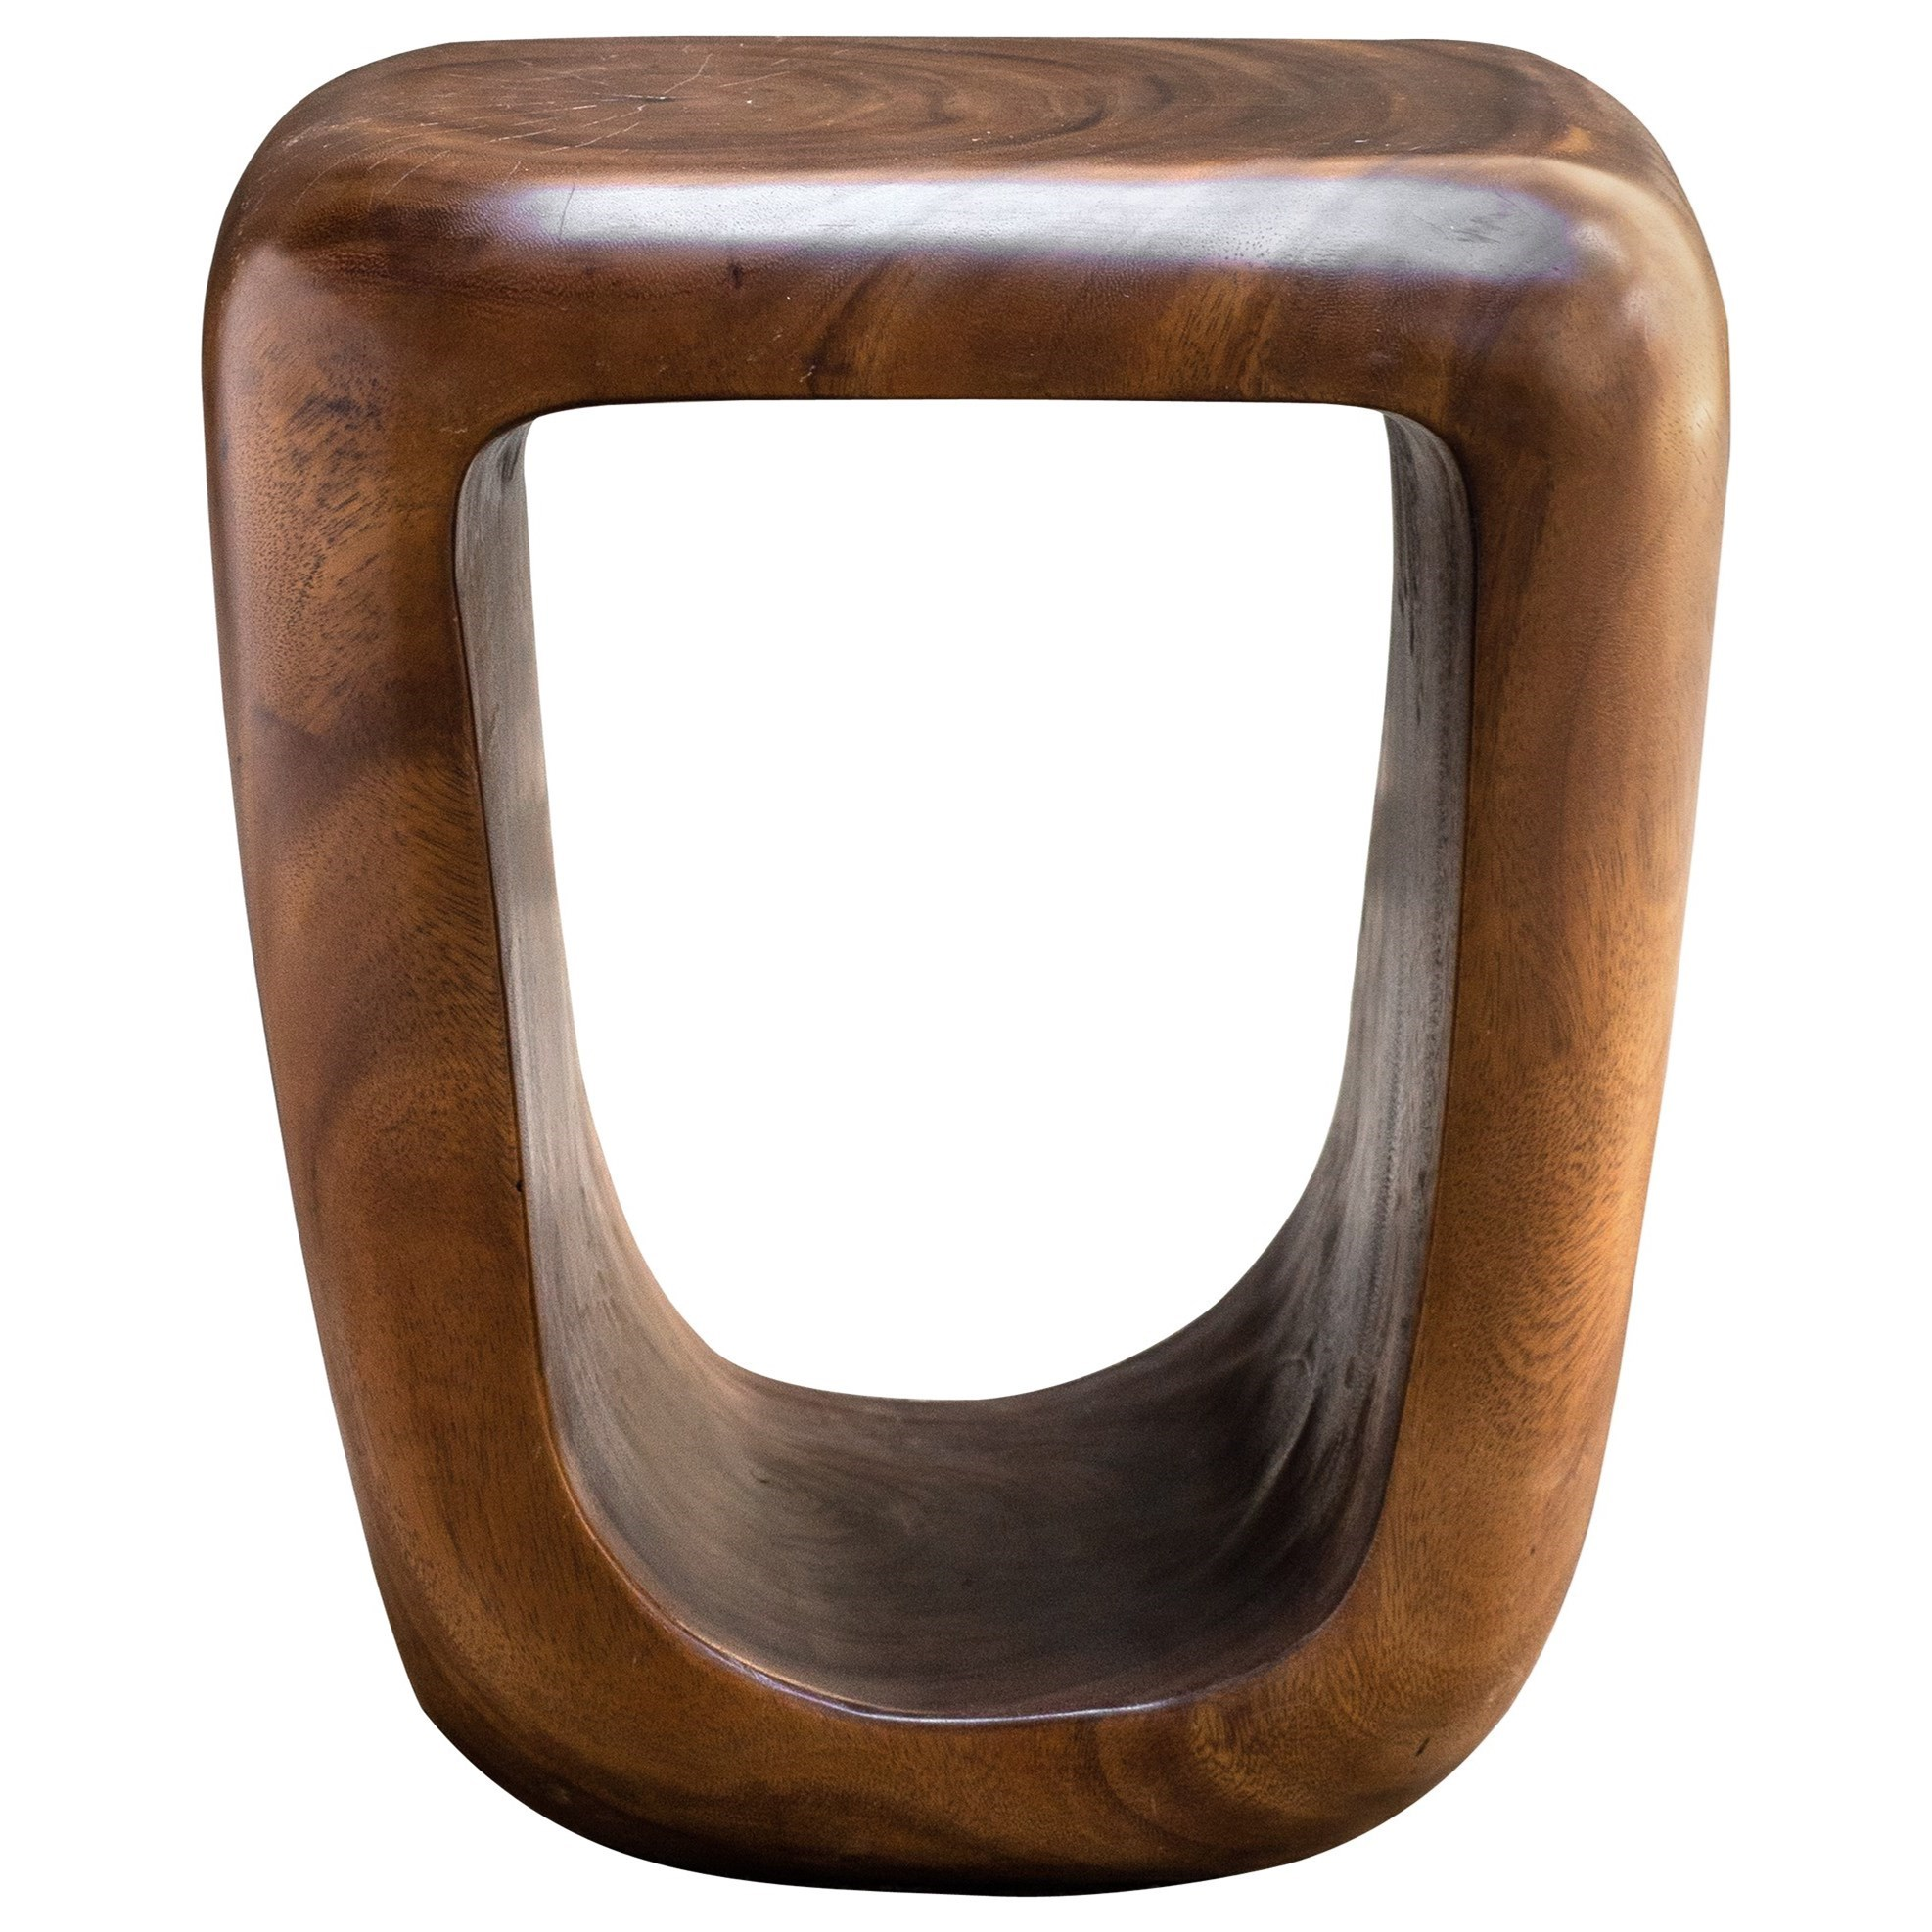 Accent Furniture - Stools Loophole Wooden Accent Stool by Uttermost at Factory Direct Furniture